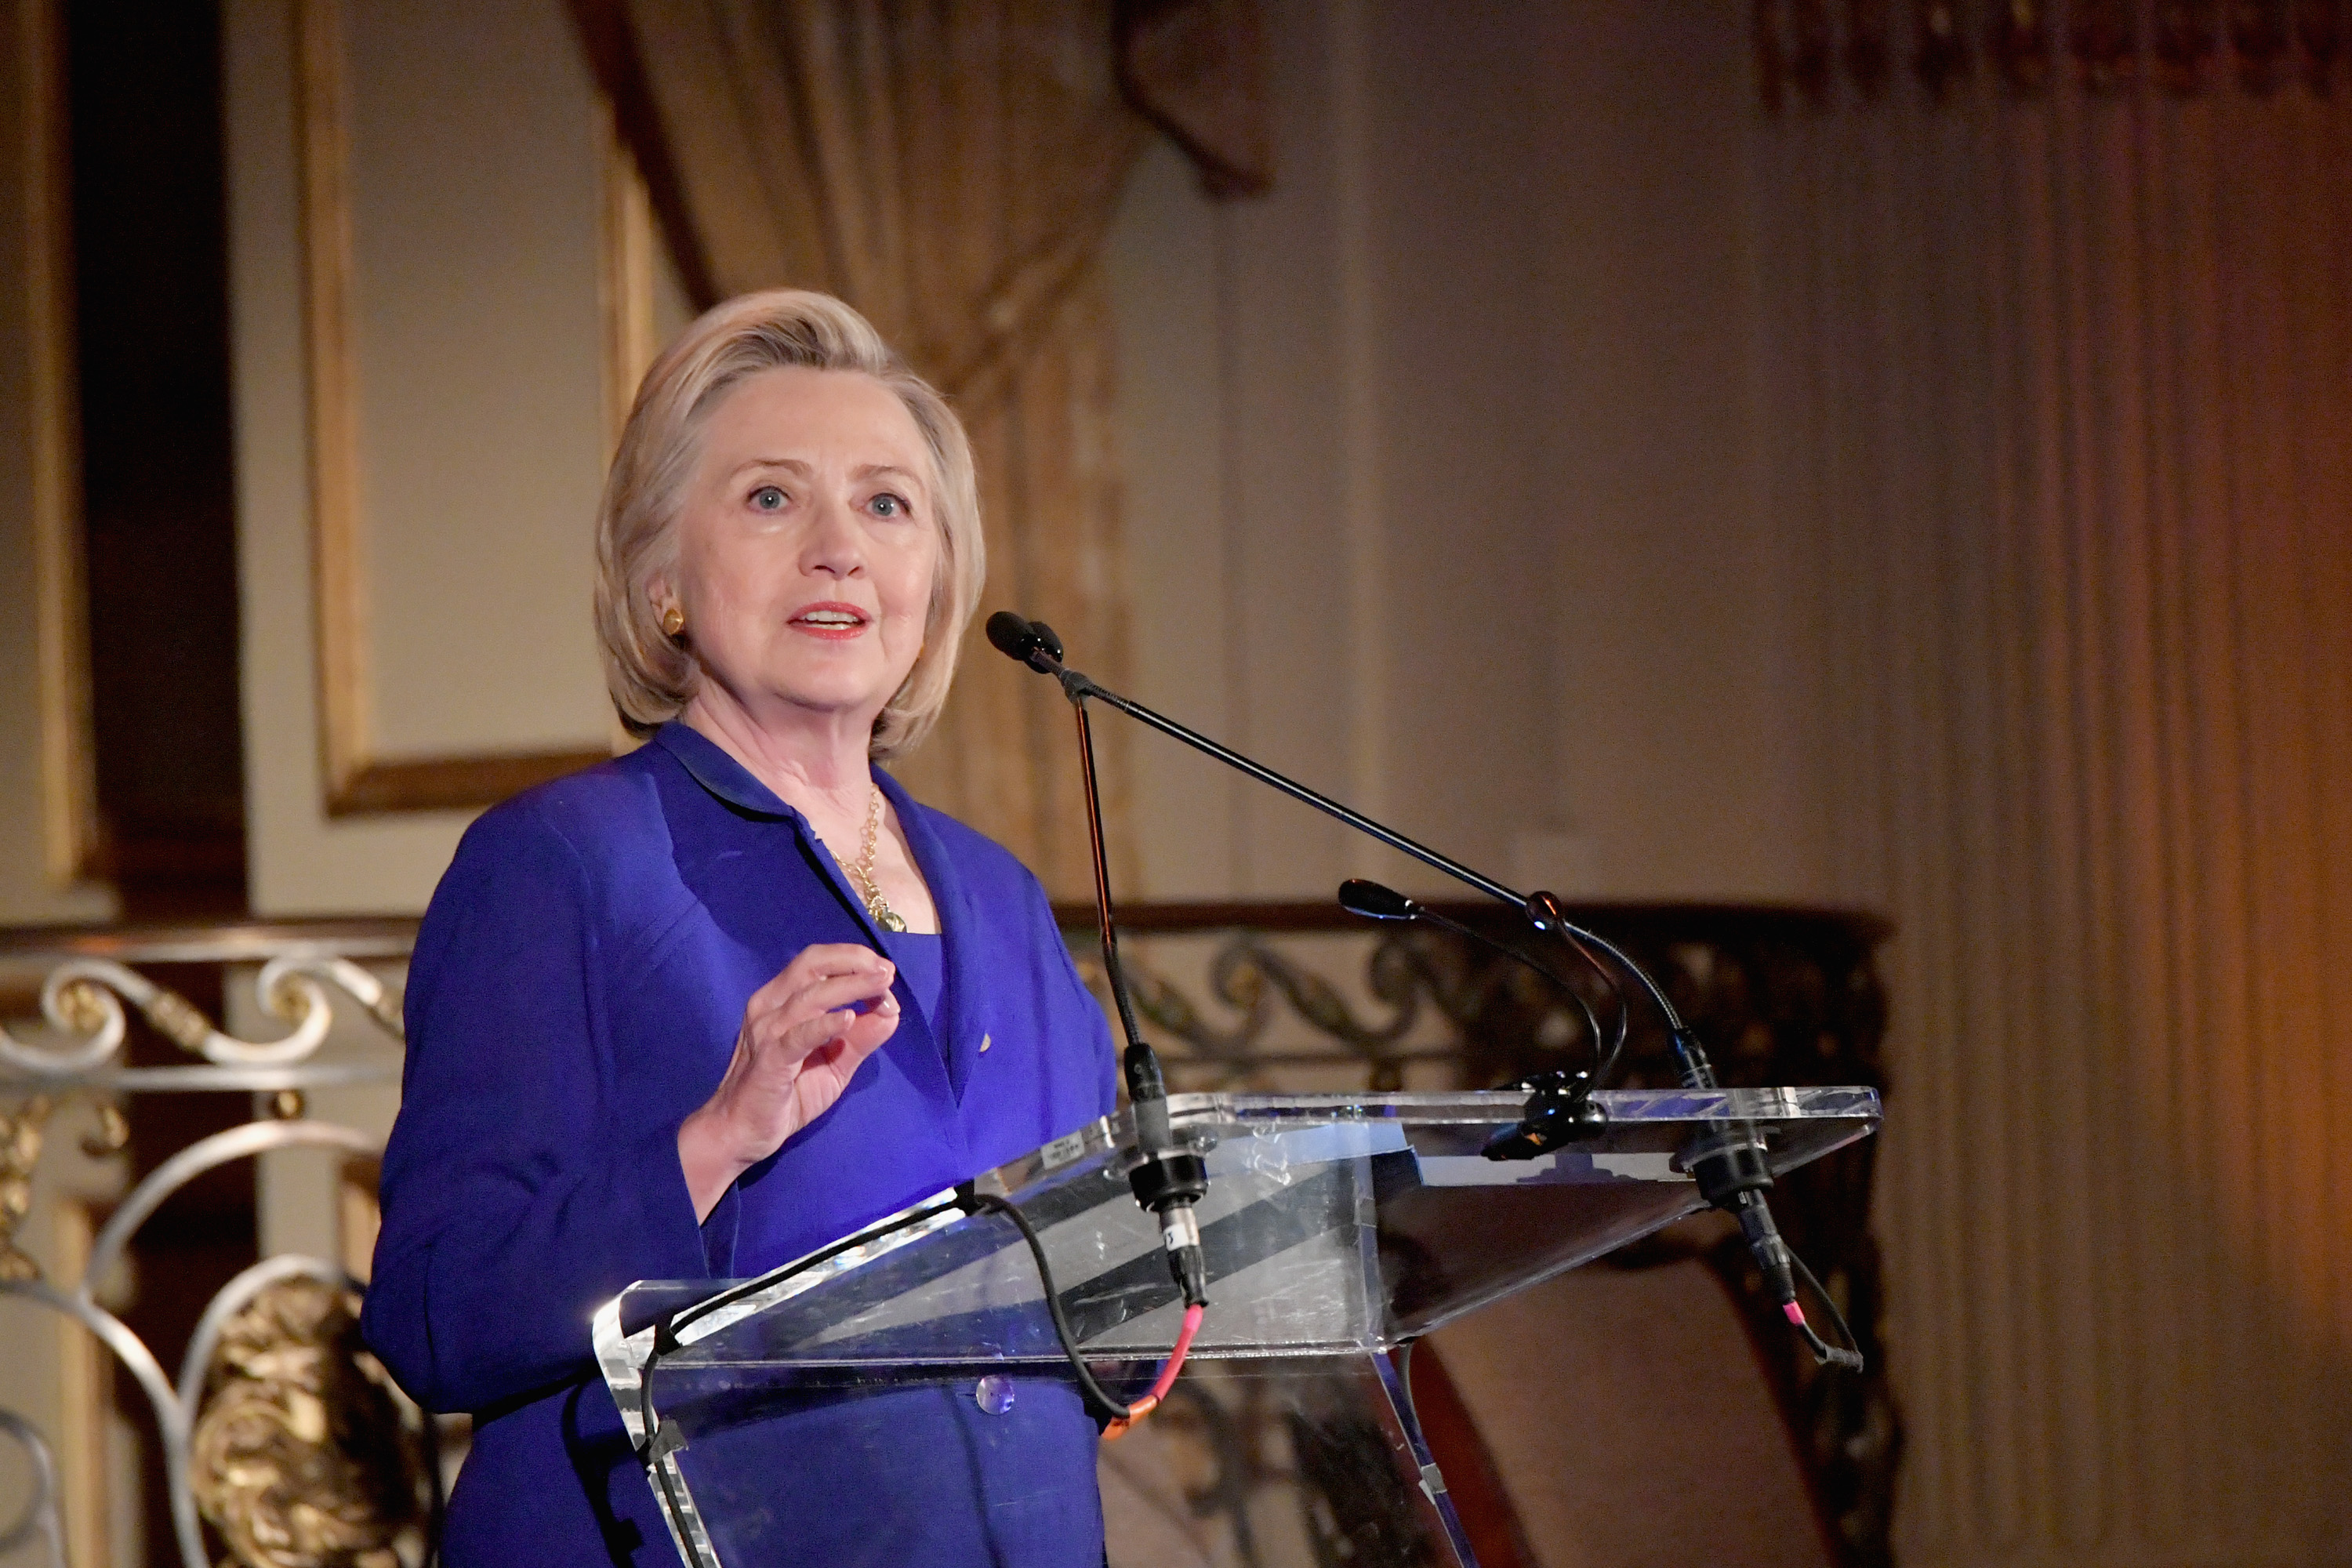 NEW YORK, NY - JUNE 18:  Former First Lady of the United States Hillary Clinton speaks onstage during the 8th Annual Elly Awards hosted by the Women's Forum of New York at The Plaza Hotel on June 18, 2018 in New York City.  (Photo by Mike Coppola/Getty Images for The Women's Forum of New York) *** Local Caption *** Hillary Clinton